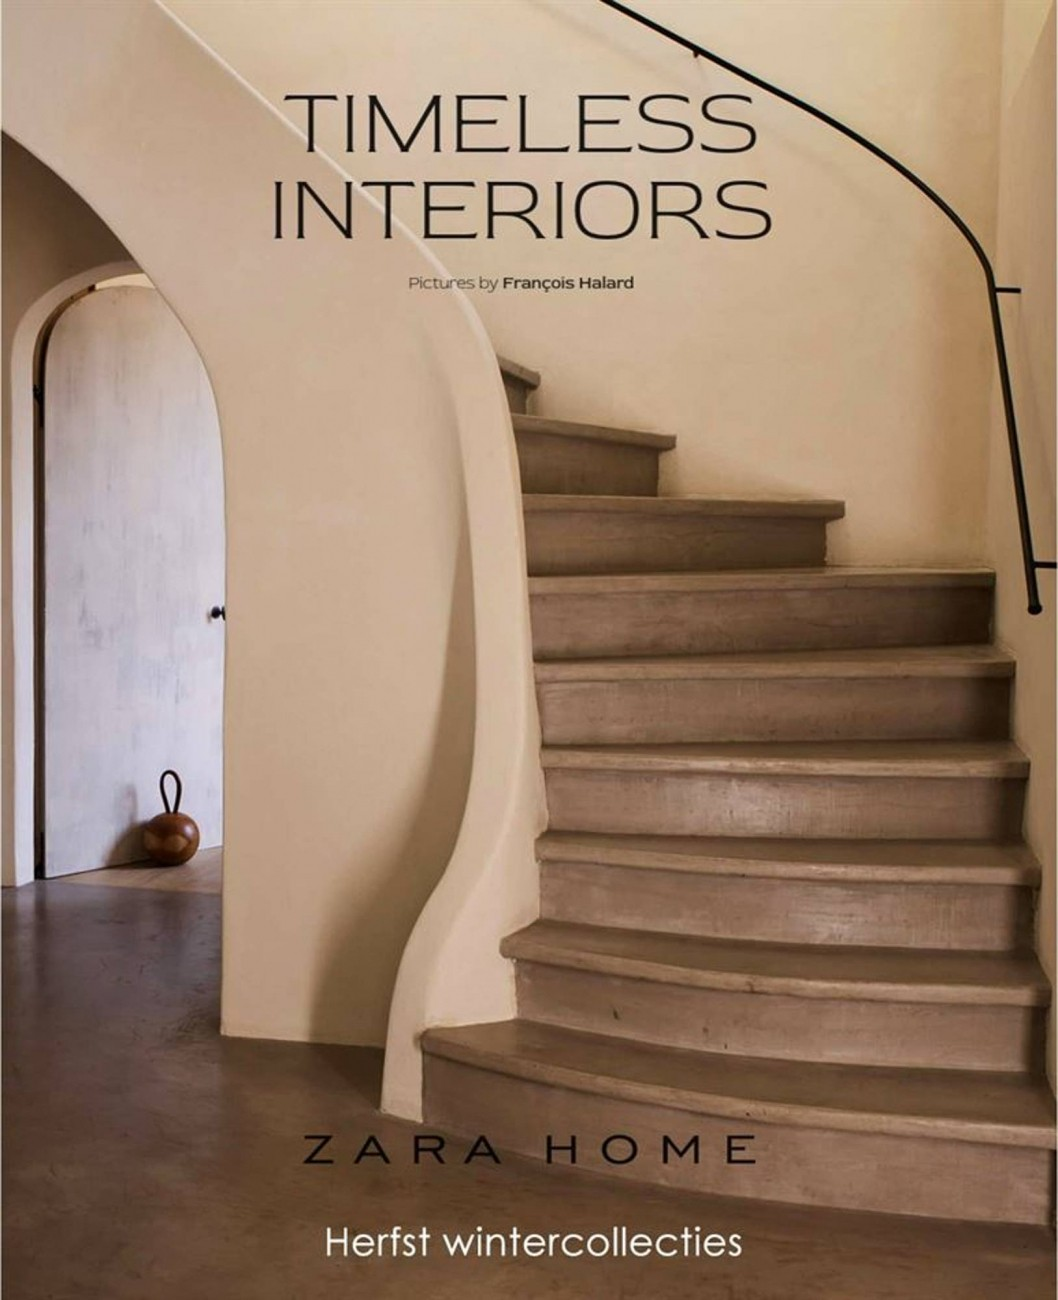 Zara Home Folder 23.09.2020 - 23.11.2020 - timeless interiors